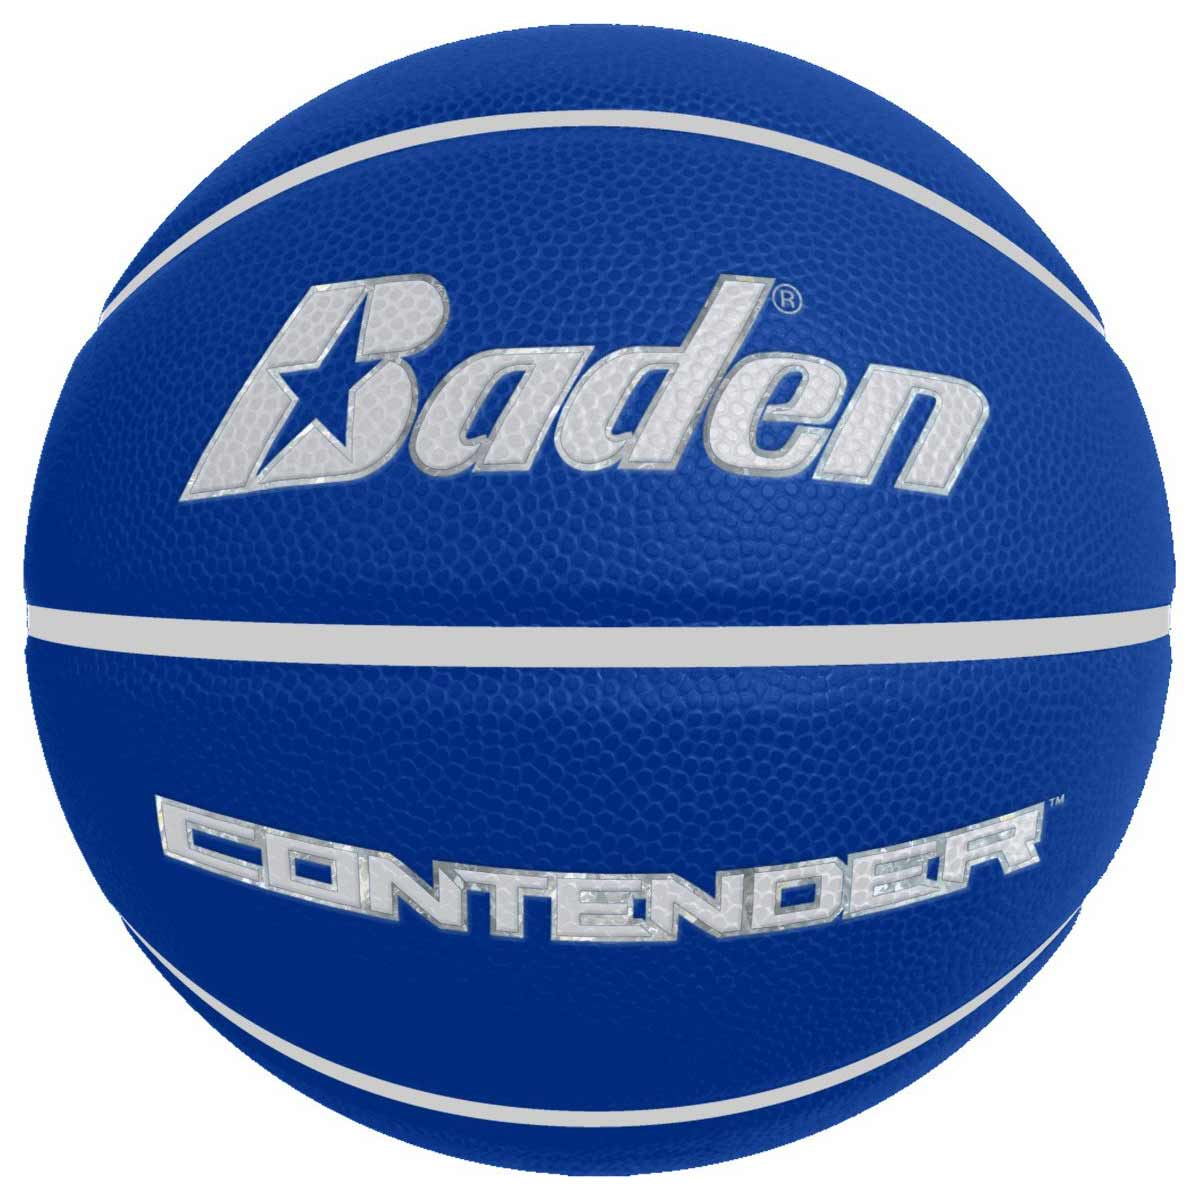 Royal Men's Official Size Contender Performance Composite Basketball